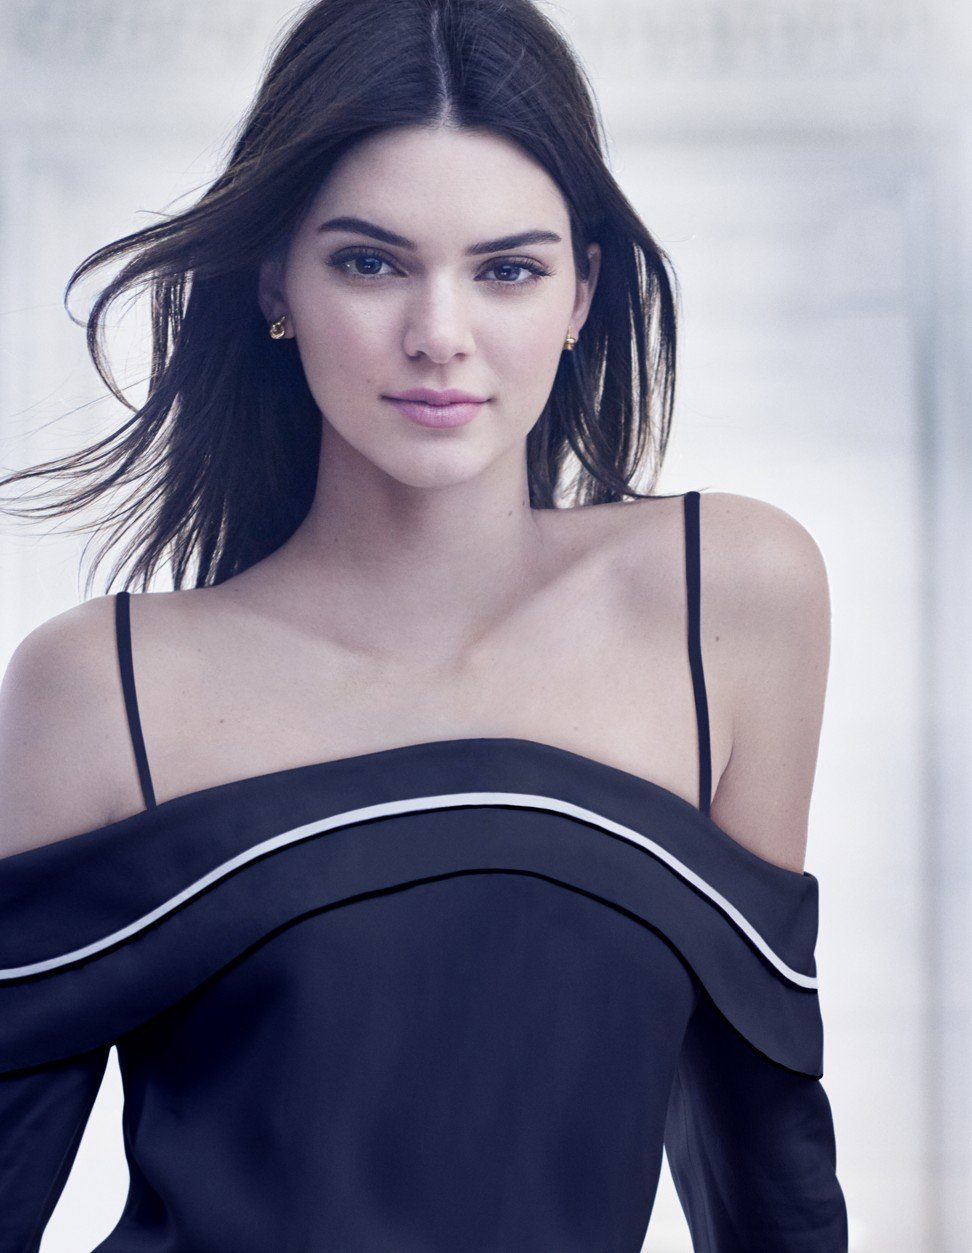 Beautiful Kendall Jenner Pics: Icons Of Our Decade? Influencers Like Kendall Jenner